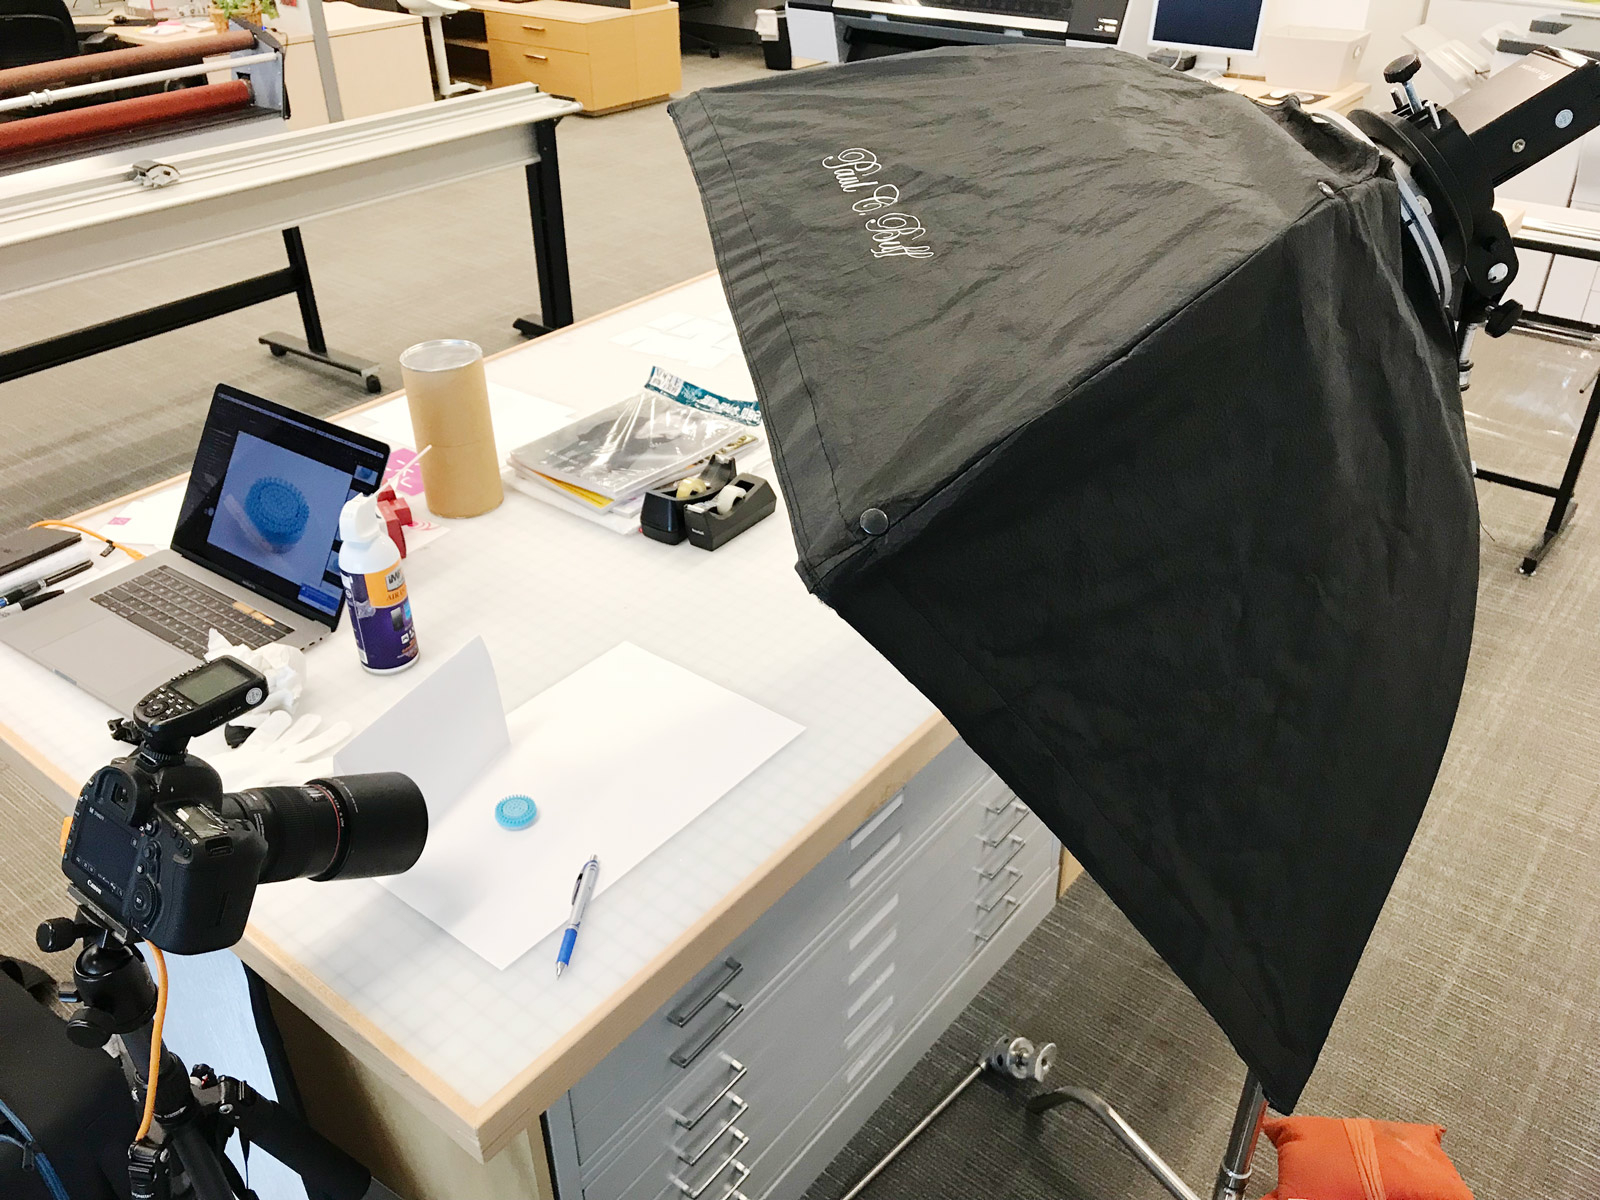 Behind the scenes of a product photo shoot